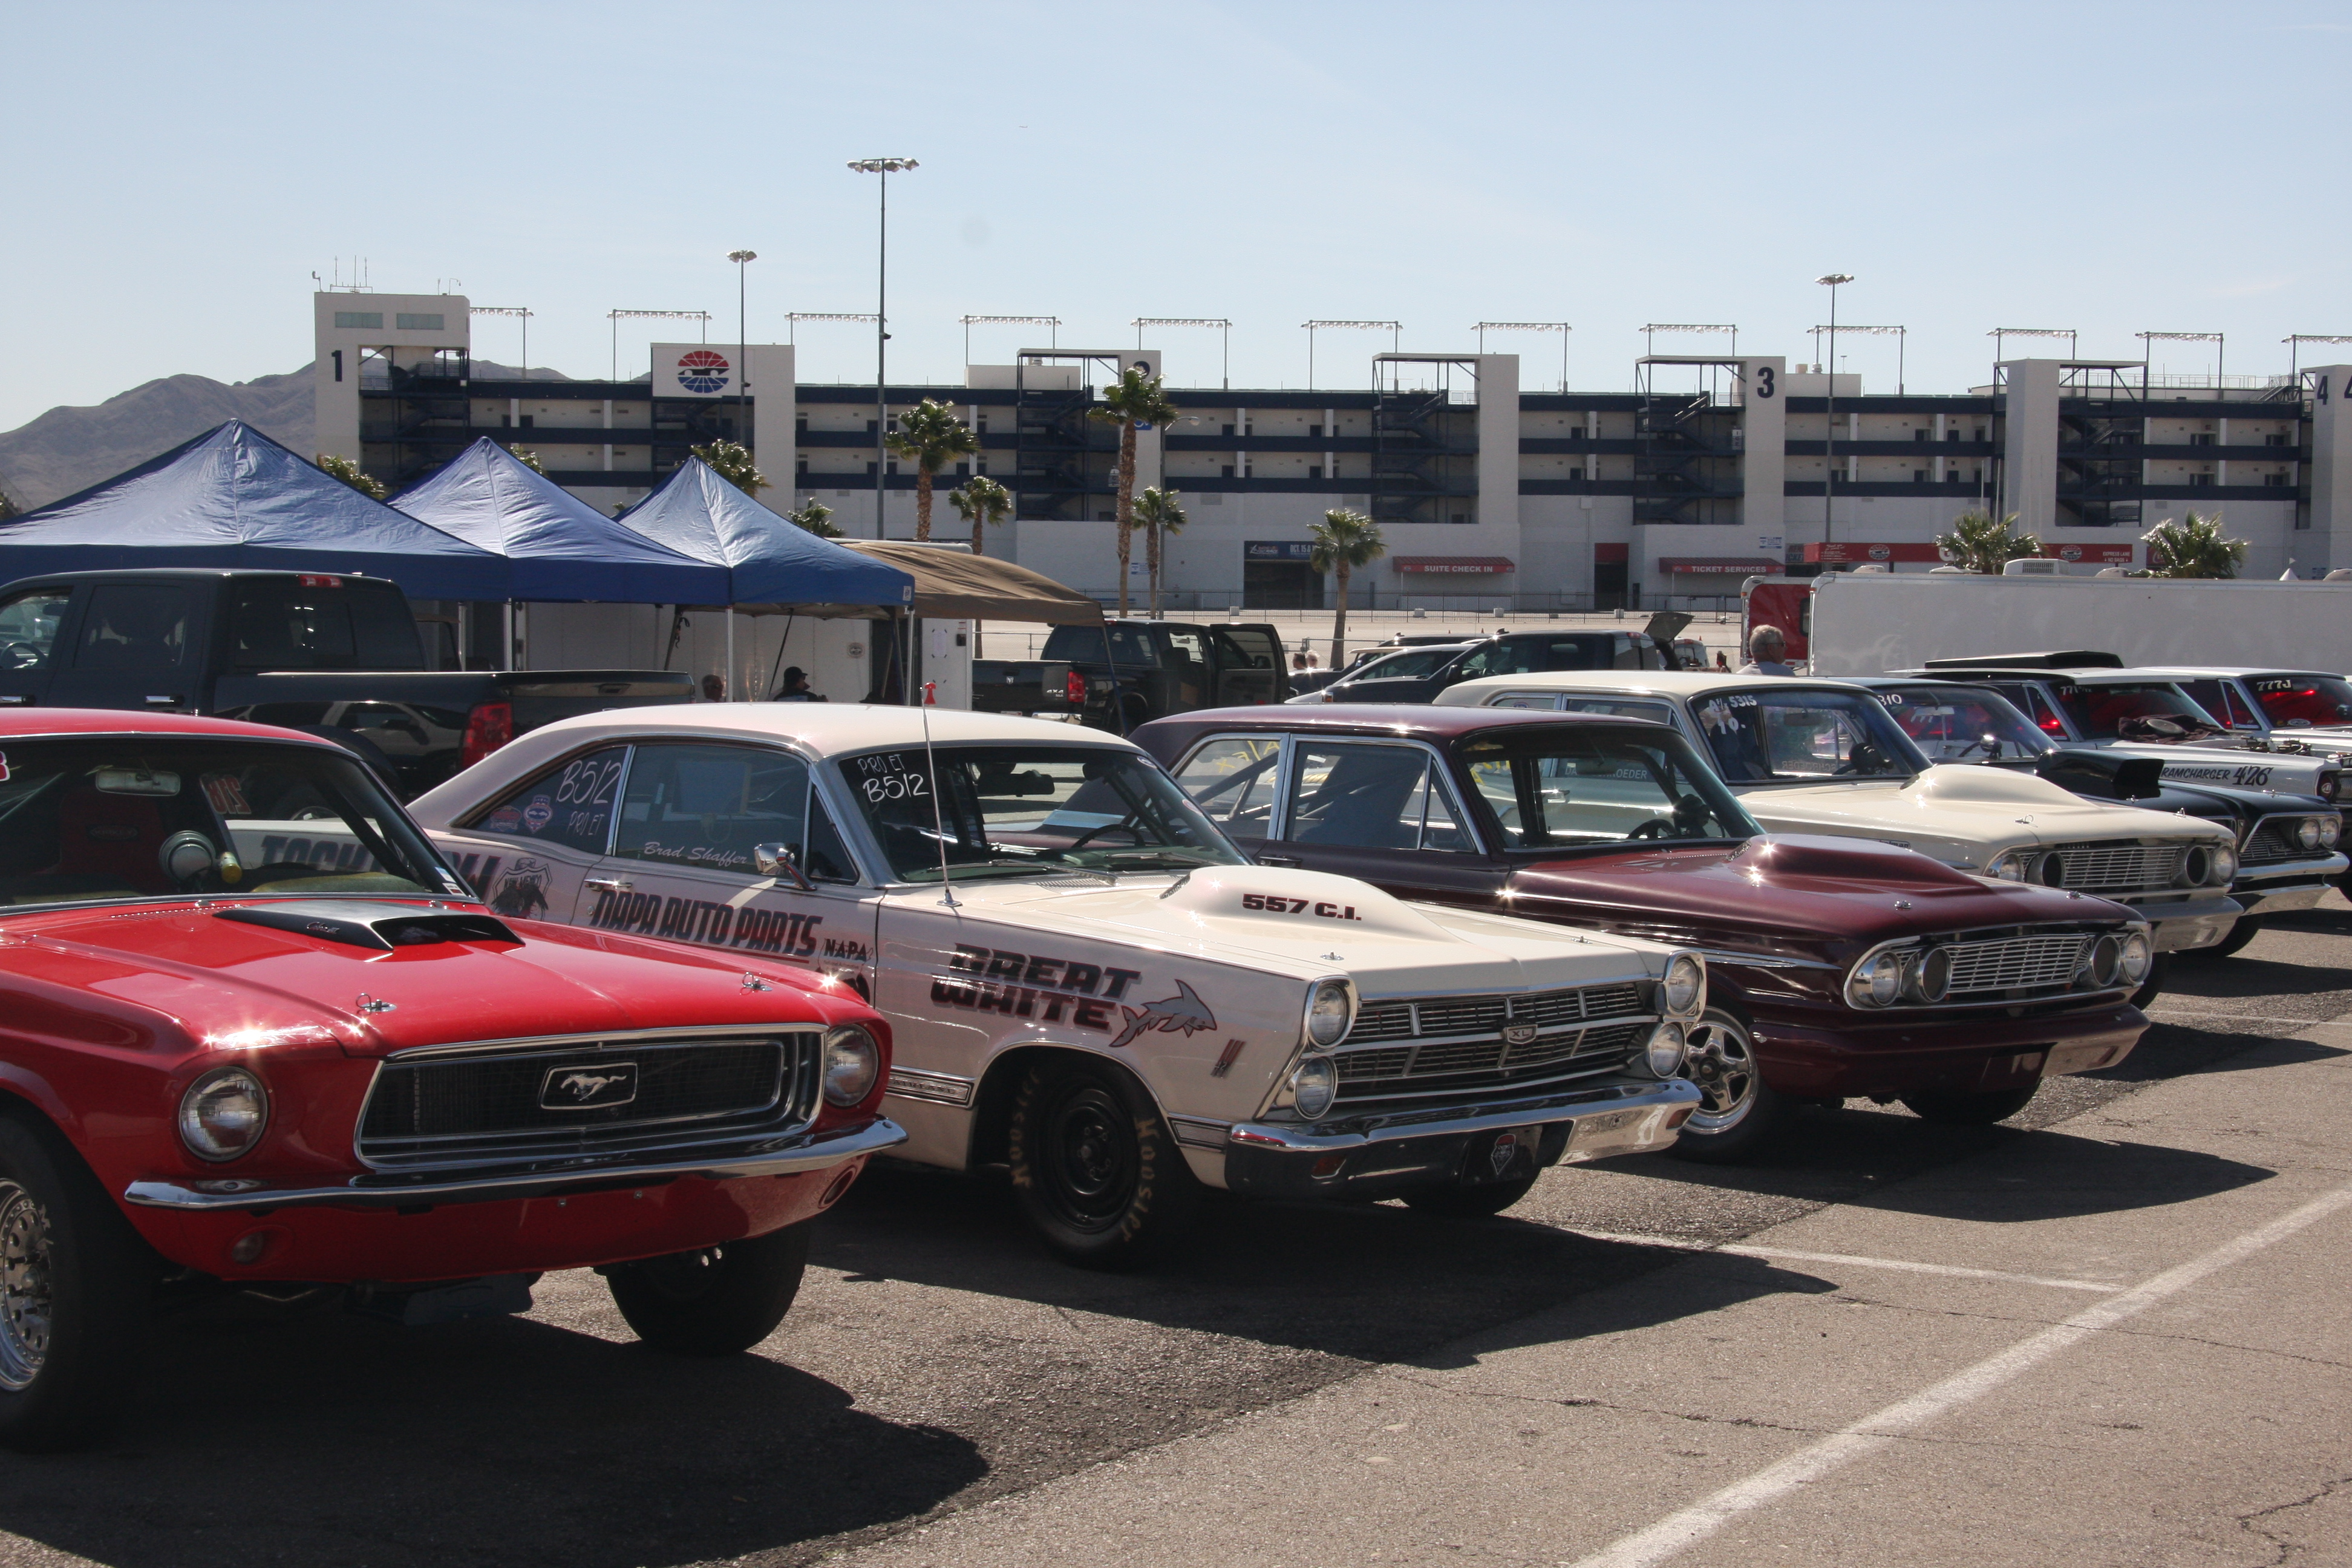 Muscle Cars At The Strip – 2016 | Rocky Mountain Chapter of American ...